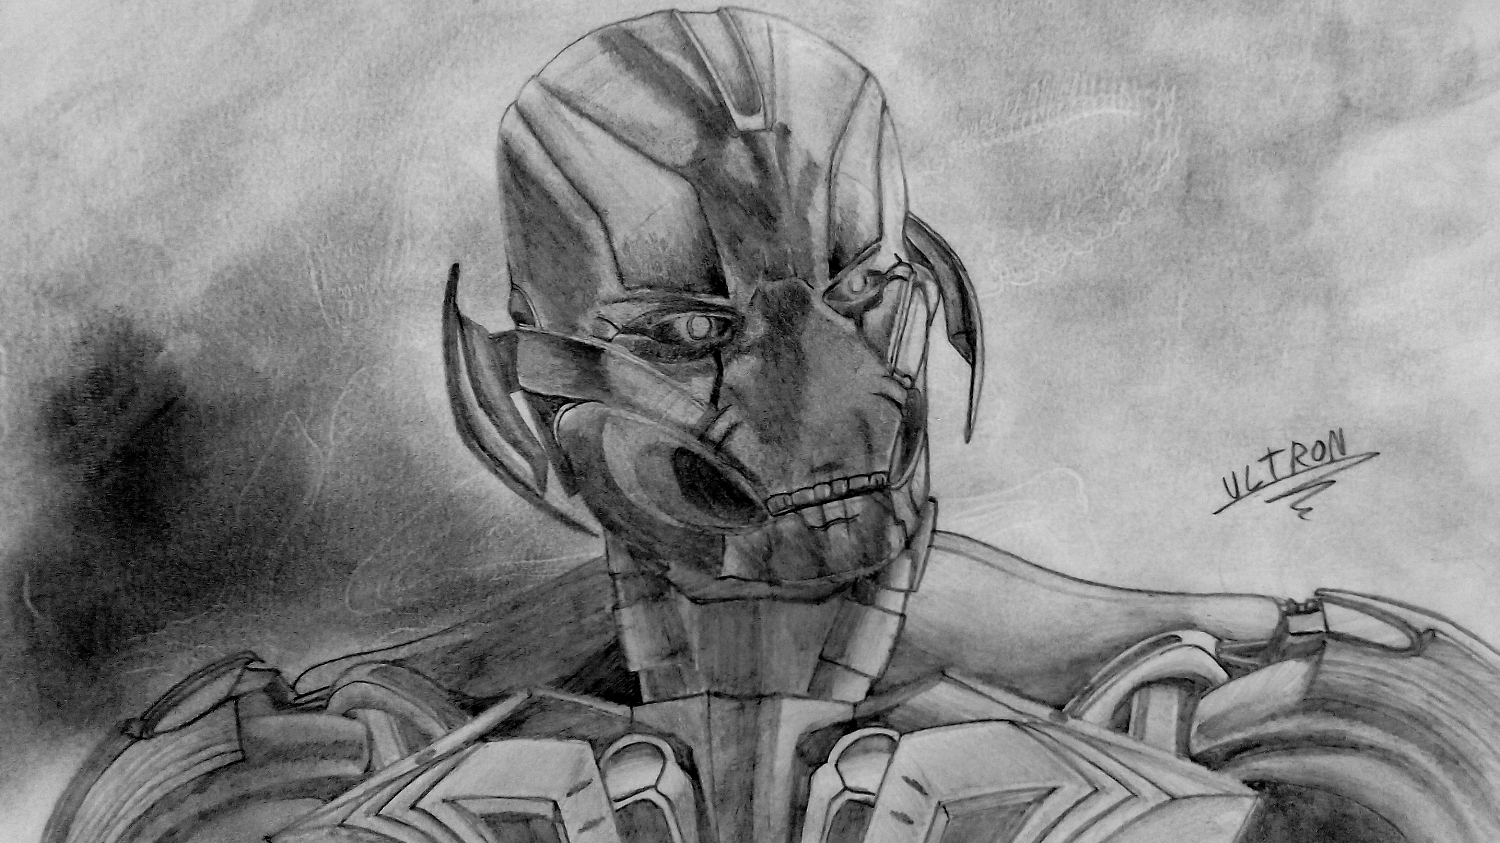 Avengers Age Of Ultron By Iloegbunam On Deviantart: Avengers Age Of Ultron By DerkSon98 On DeviantArt